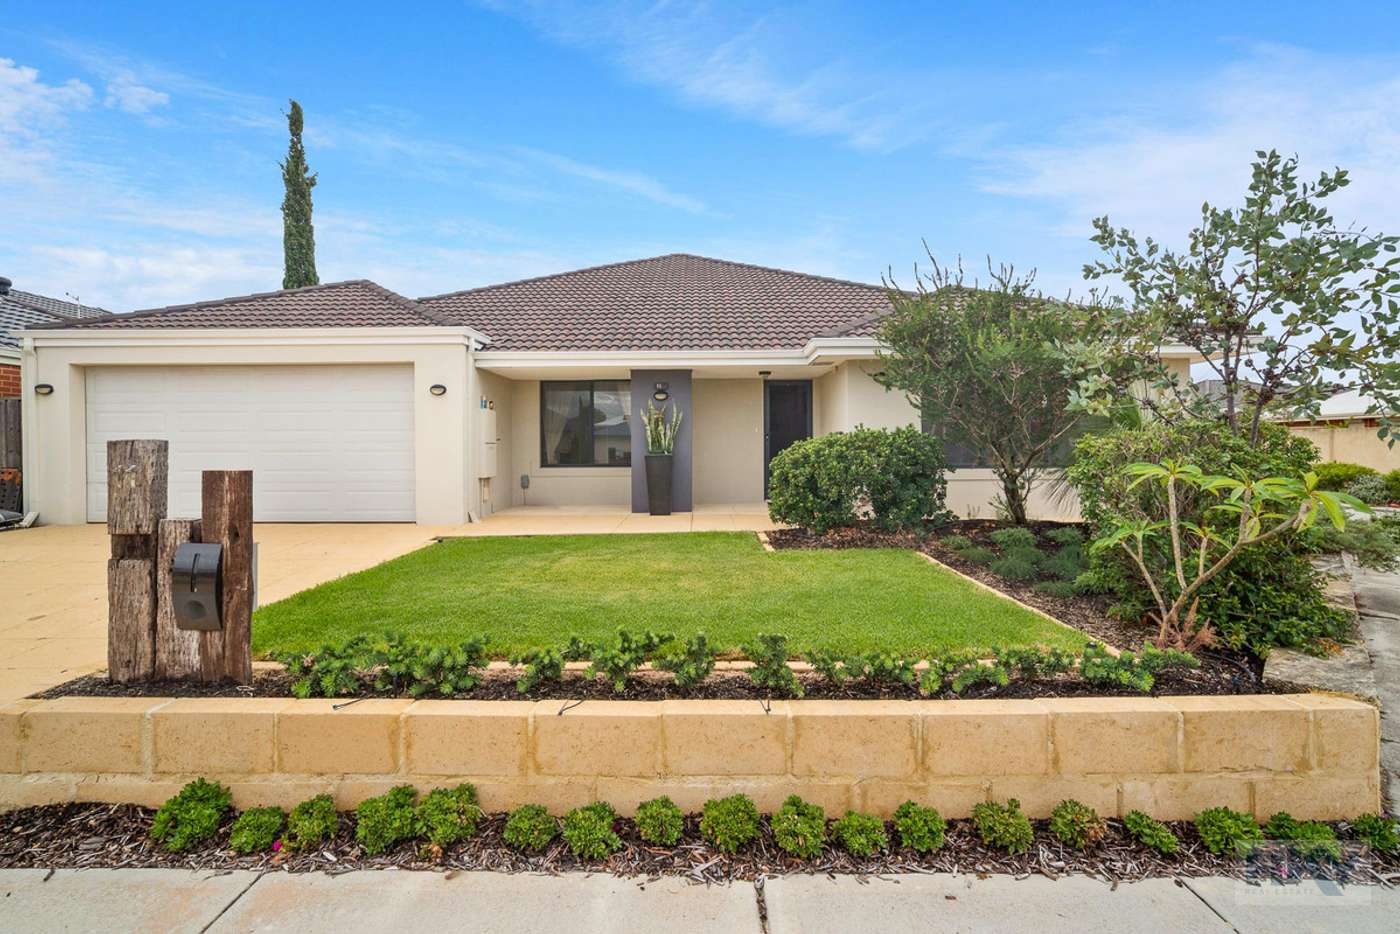 Main view of Homely house listing, 11 Leedon Drive, Ellenbrook WA 6069